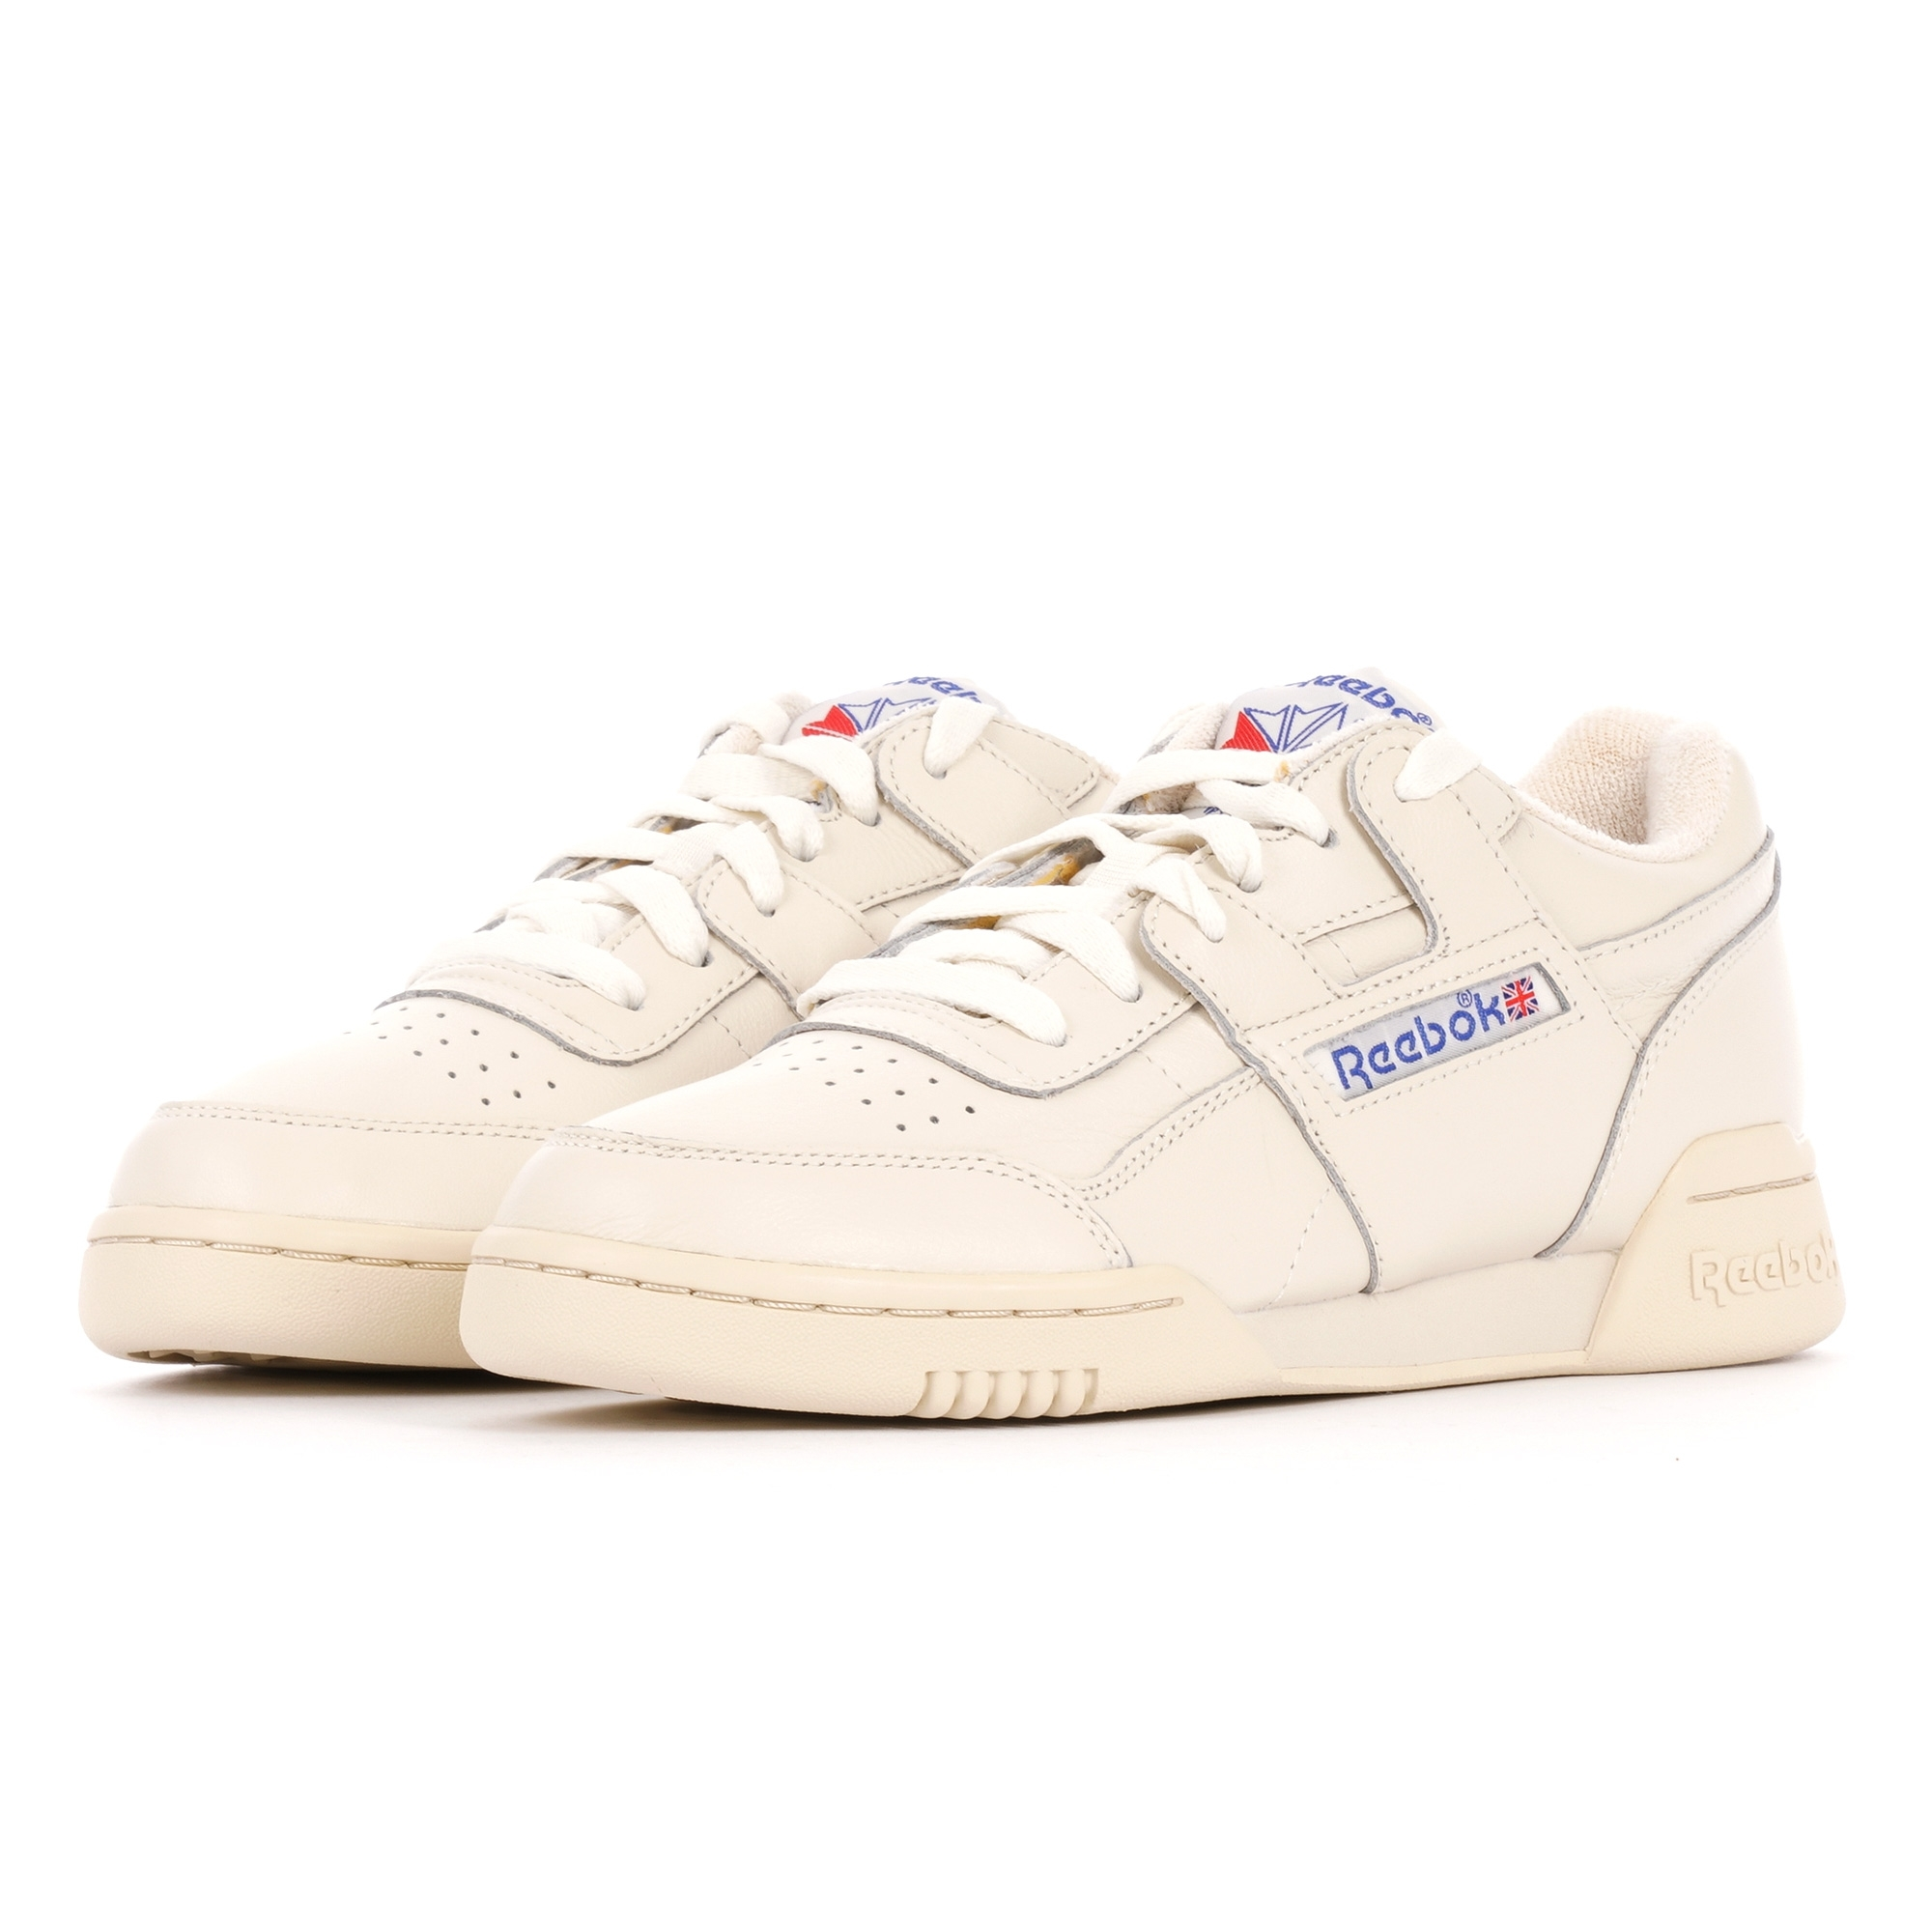 506a8fcddde2f9 Reebok Workout Plus 1987 TV